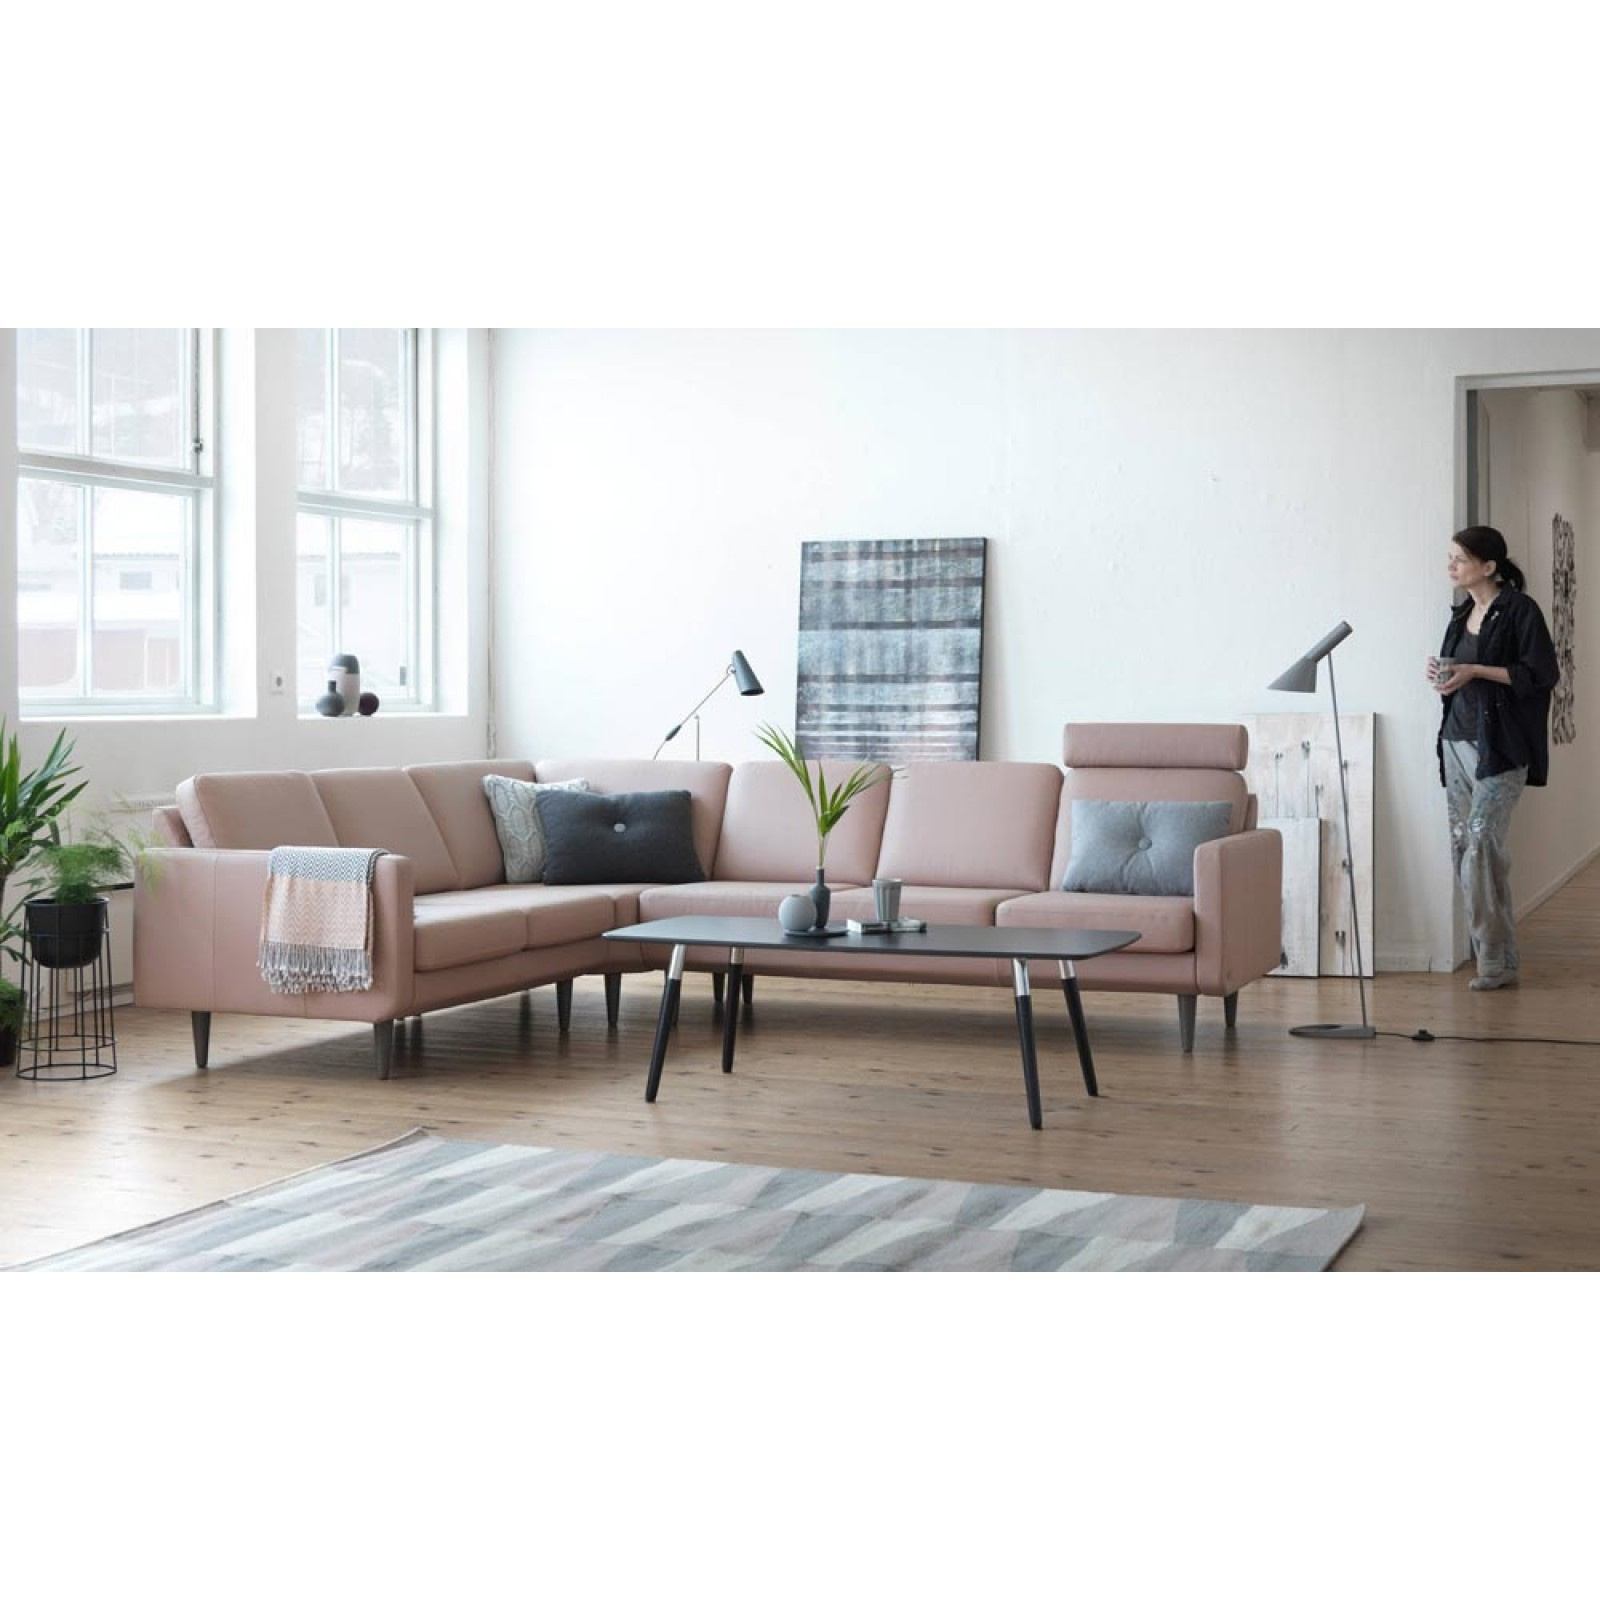 Stressless Style Sofa Table from $525 00 by Stressless